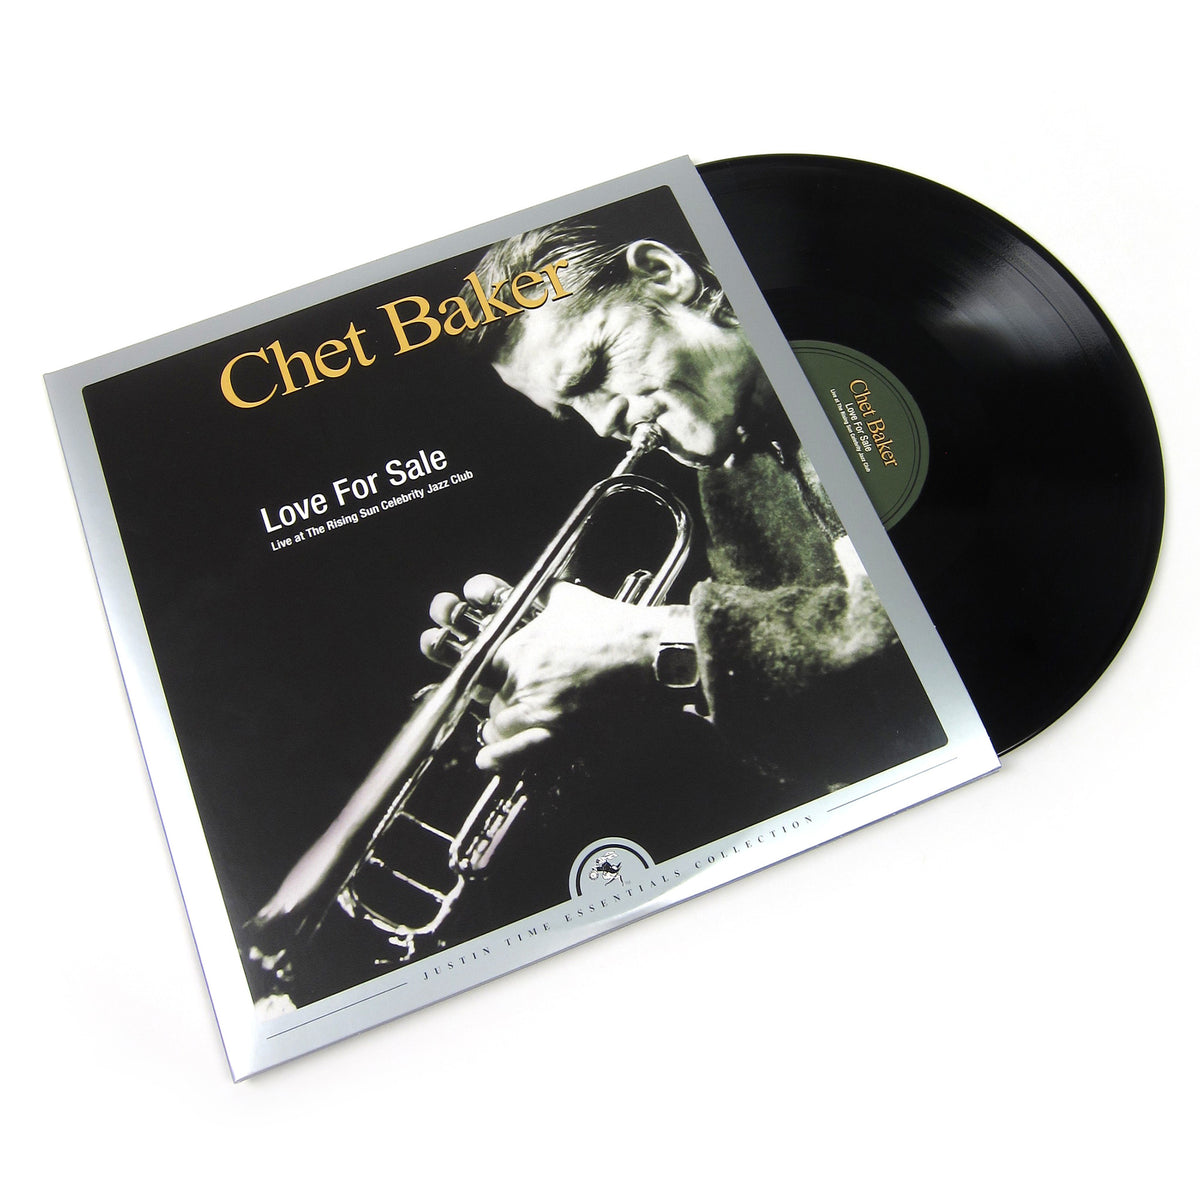 Chet Baker: Love For Sale - Live At The Rising Sun Celebrity Club (180g) Vinyl LP (Record Store Day)